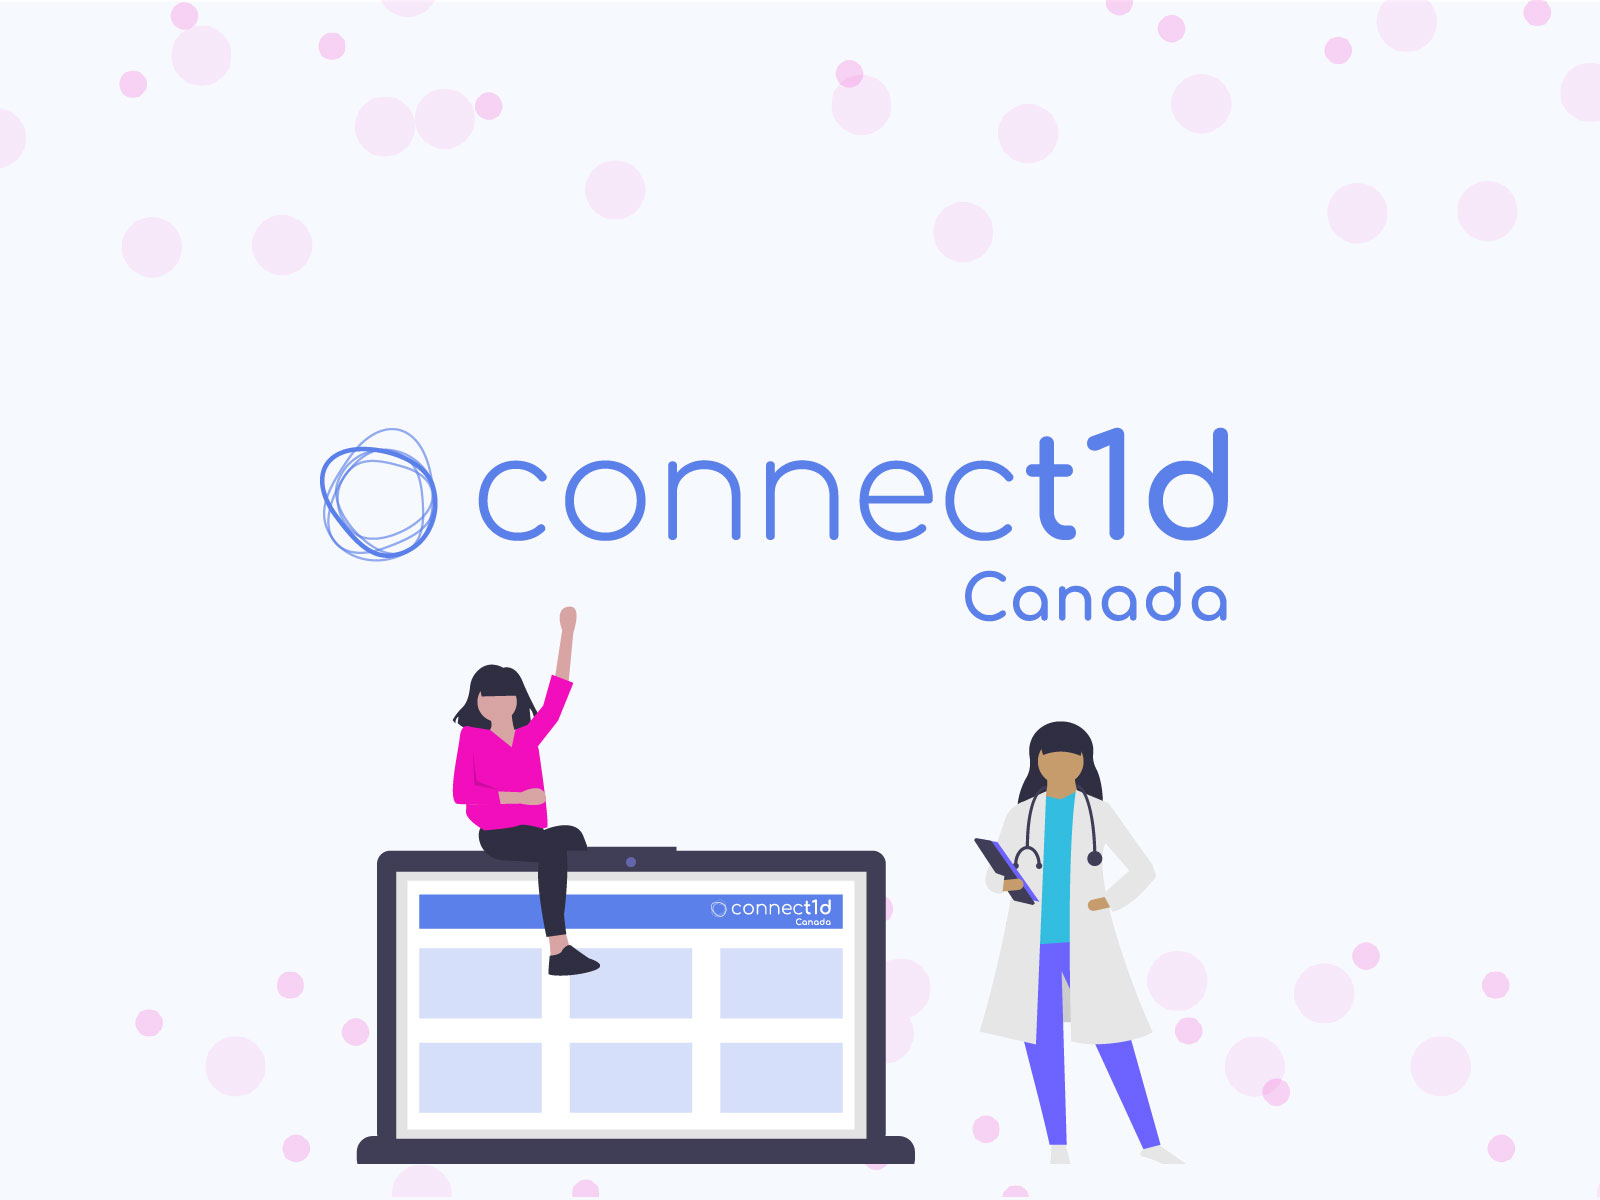 Connect1d Canada partners with the T1D Exchange